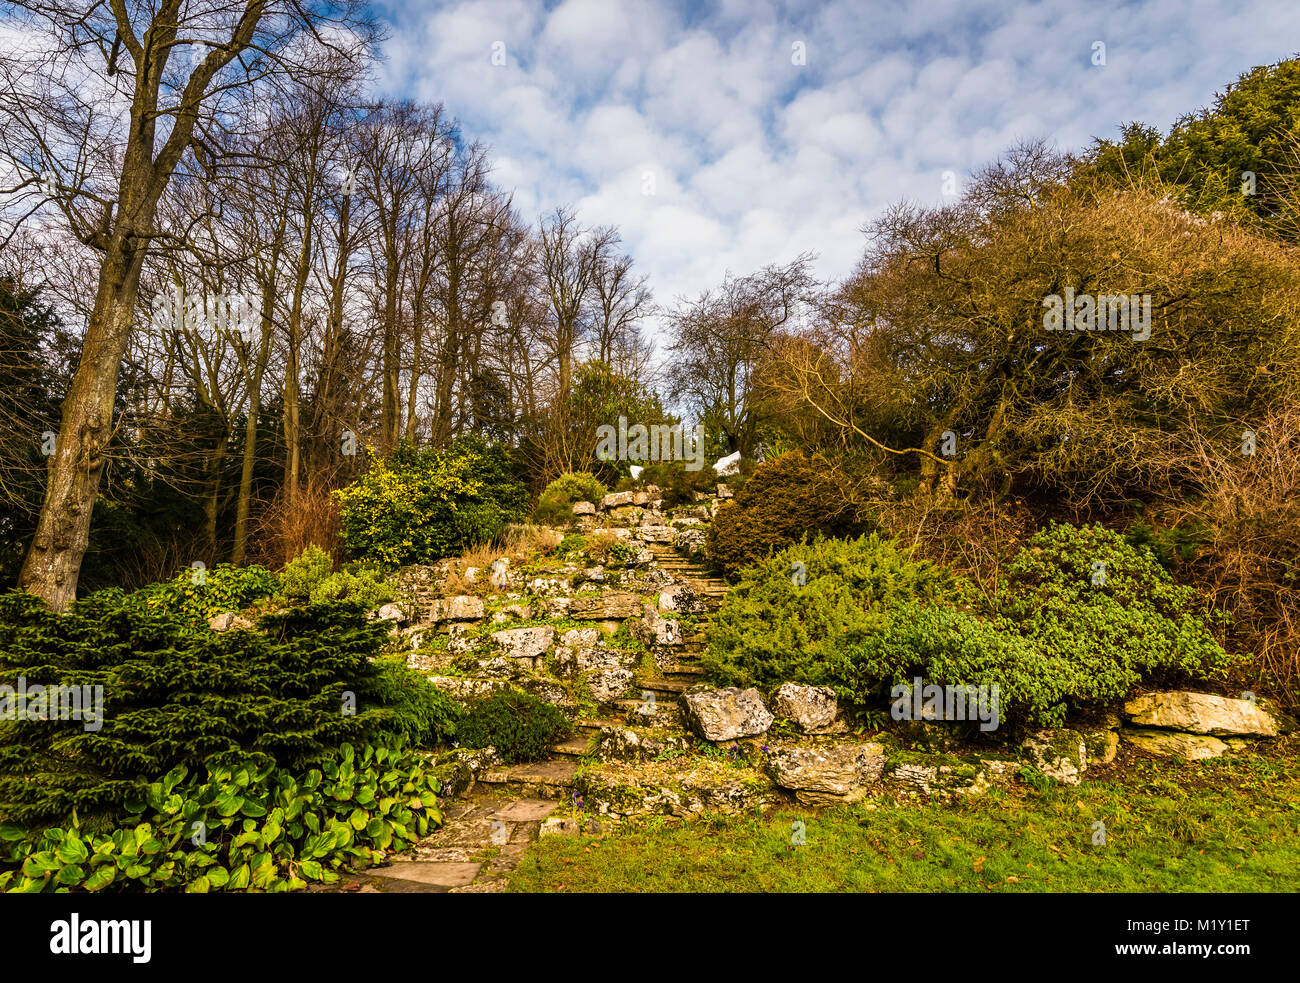 Stone steps through the garden at Polesden Lacey, Surrey, UK - Stock Image